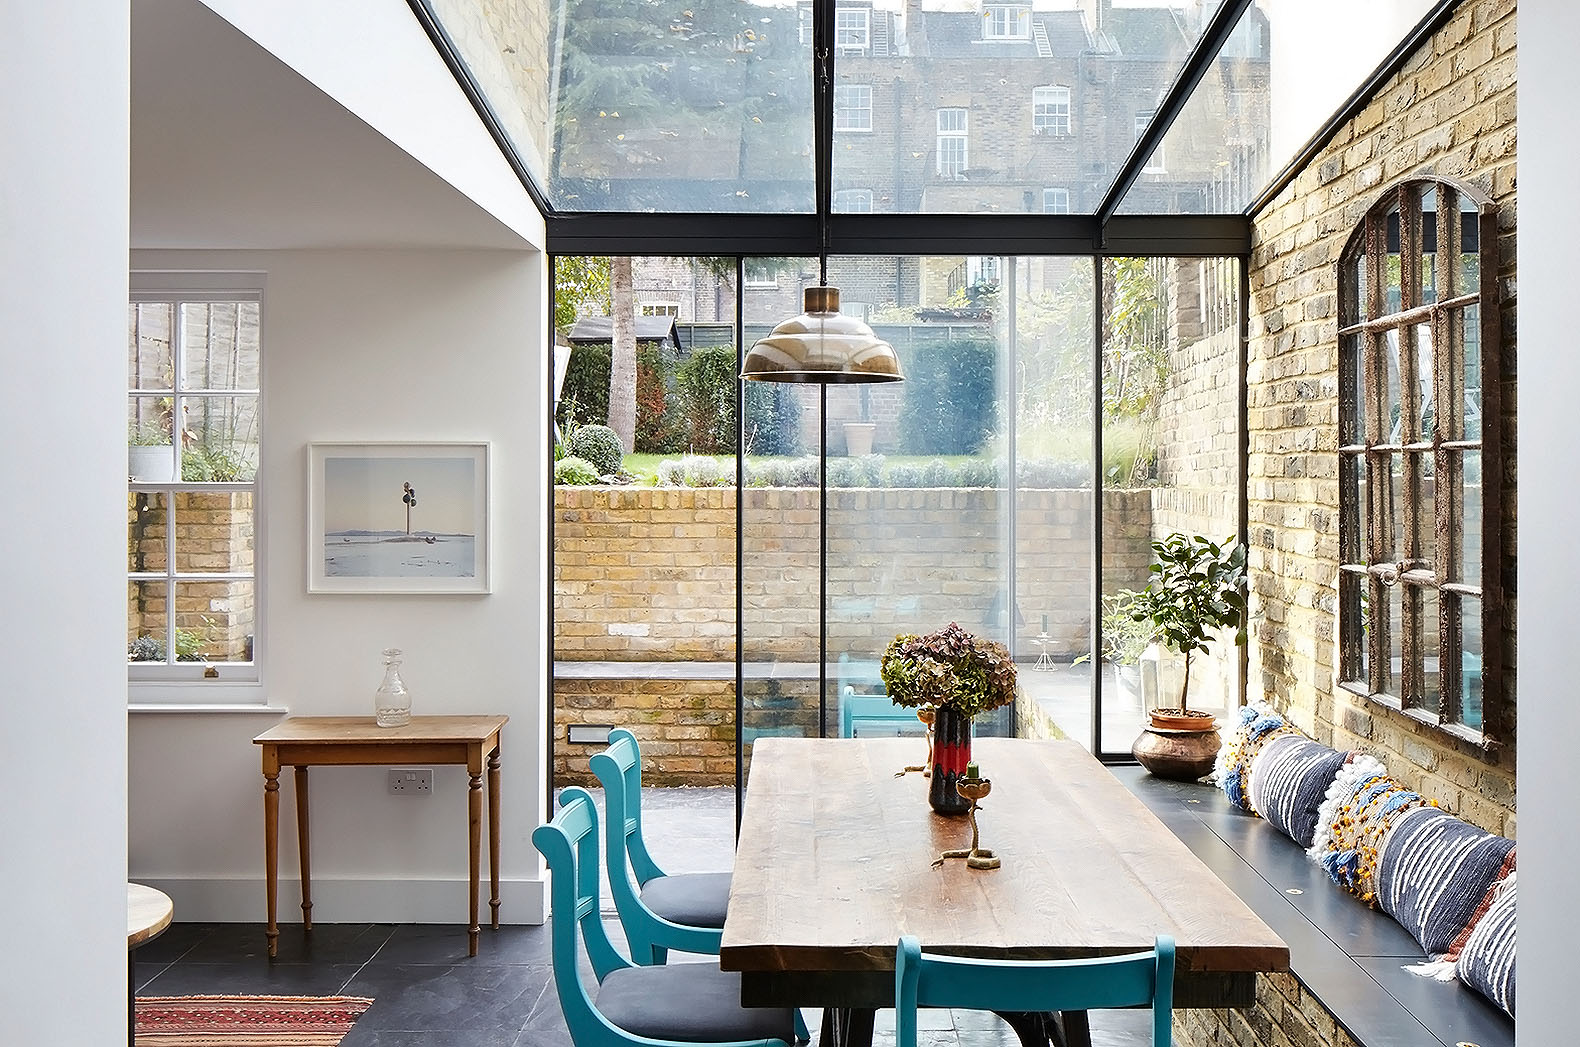 H 219 T Deftly Extends A Victorian House In London S Mile End With A Jewel Like Glass Box